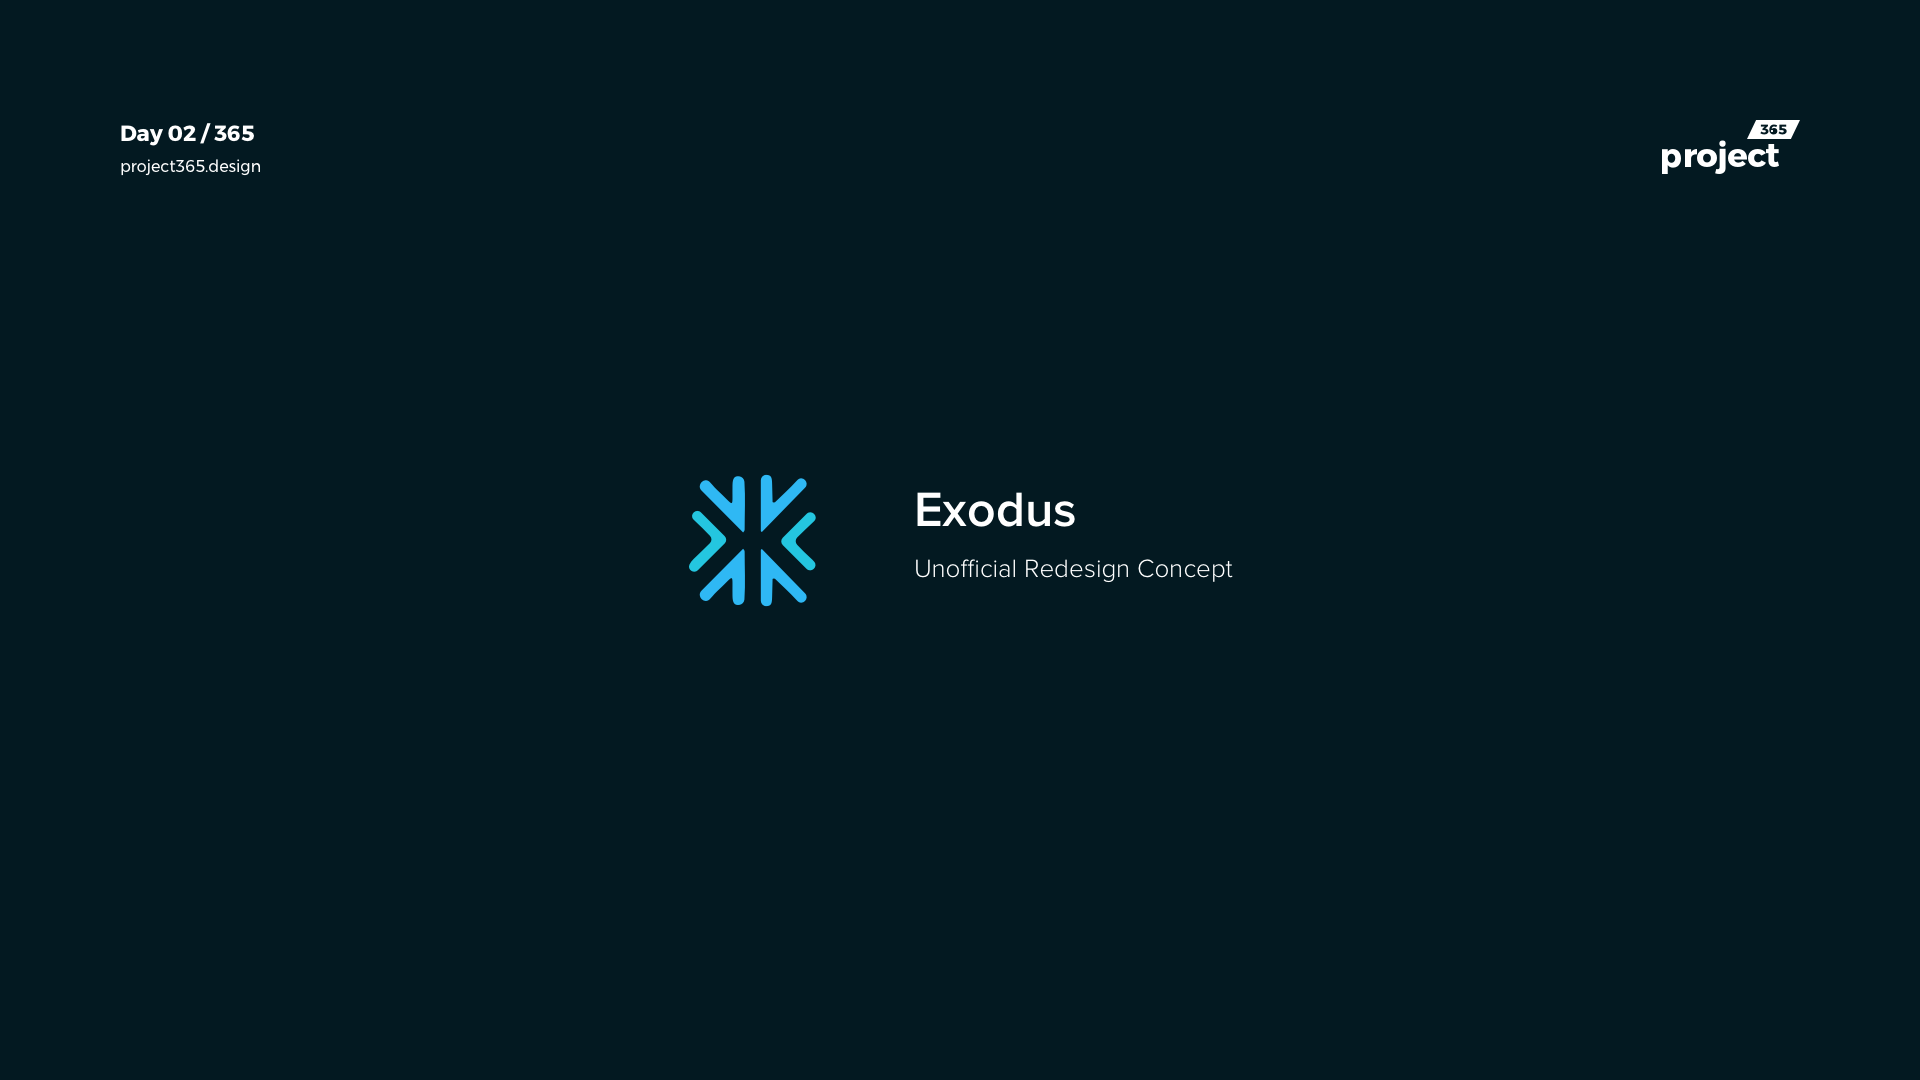 Day 02 – Exodus App Redesign